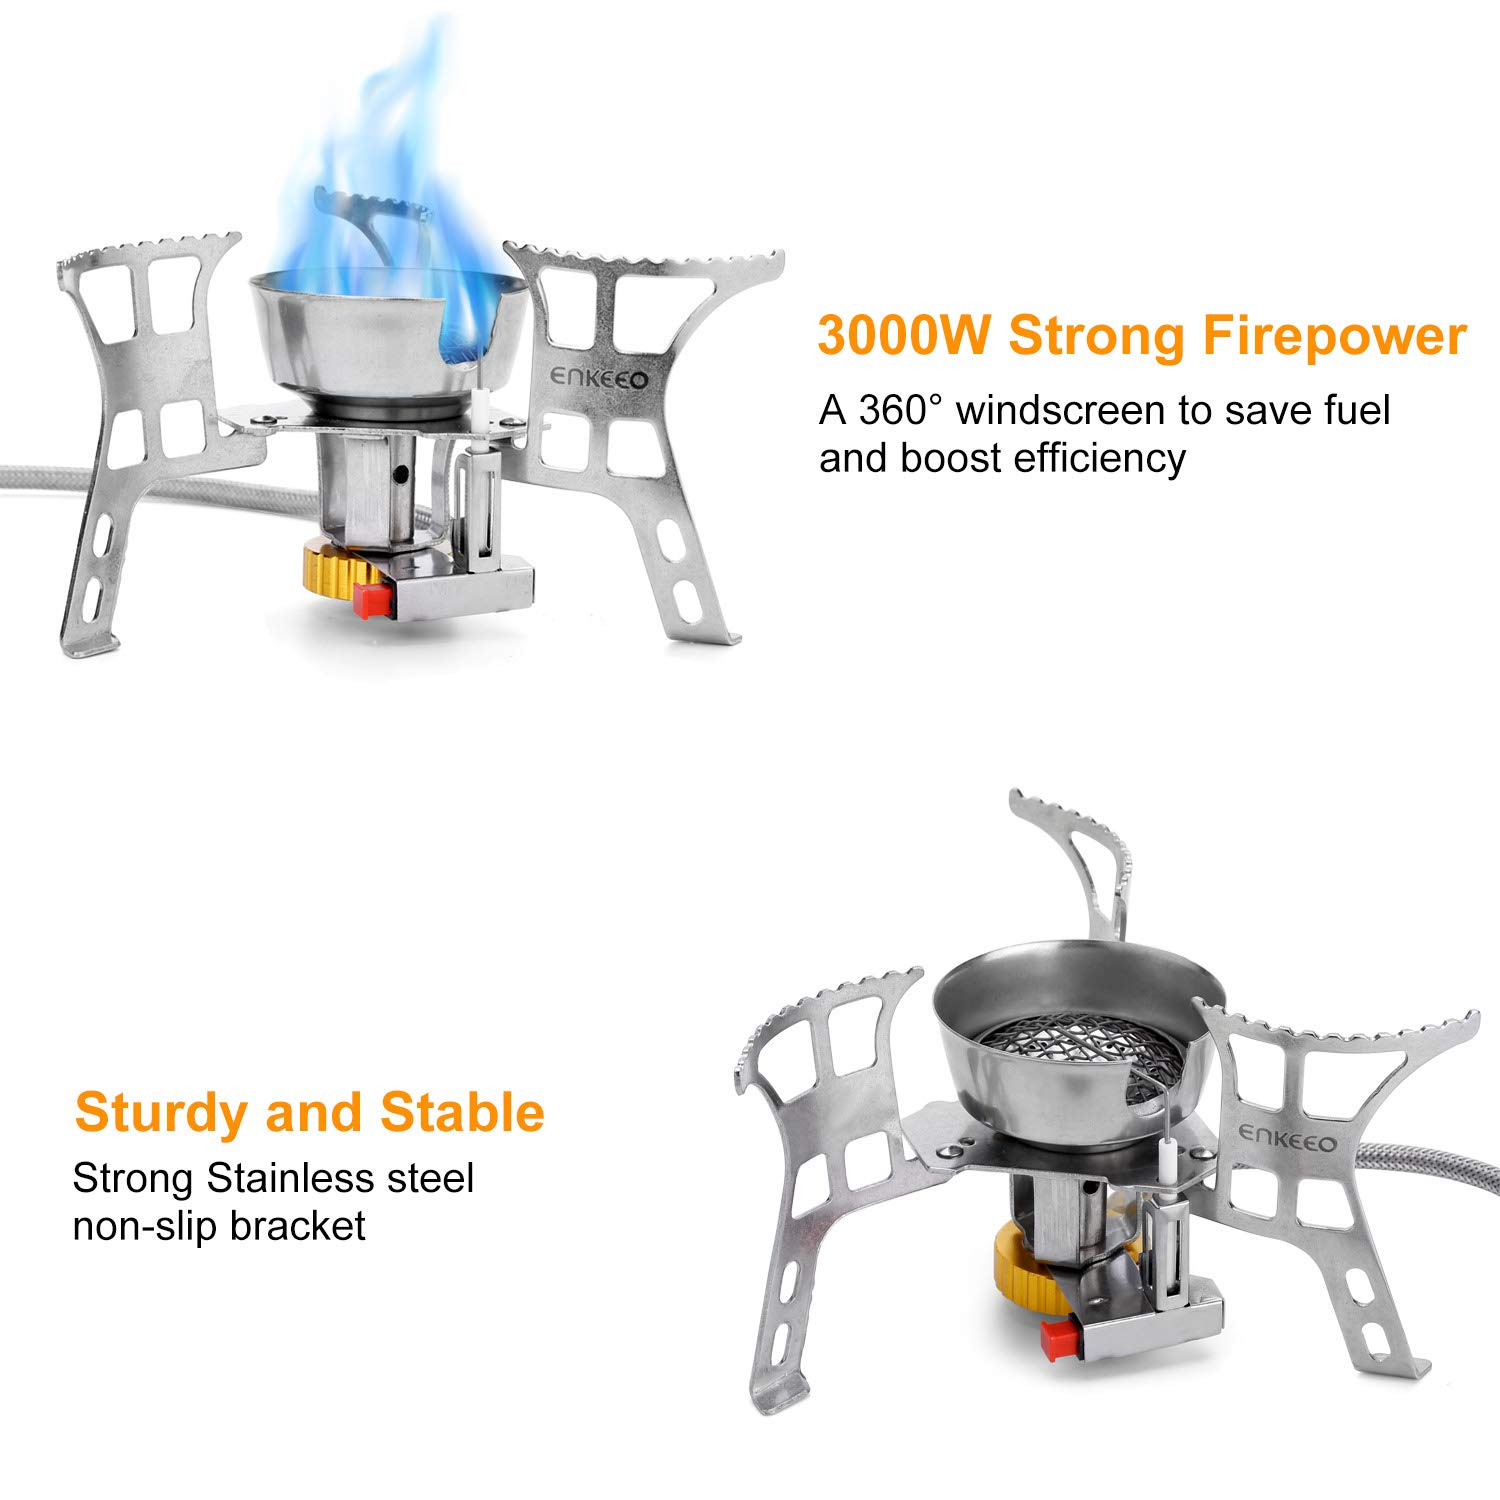 Pocket Size for Outdoor Camp Kitchen ENKEEO 3000W Windproof Camping Stove Foldable Backpacking Stoves Ultralight Portable Gas Cooker with Piezo Ignition Hiking and Traveling